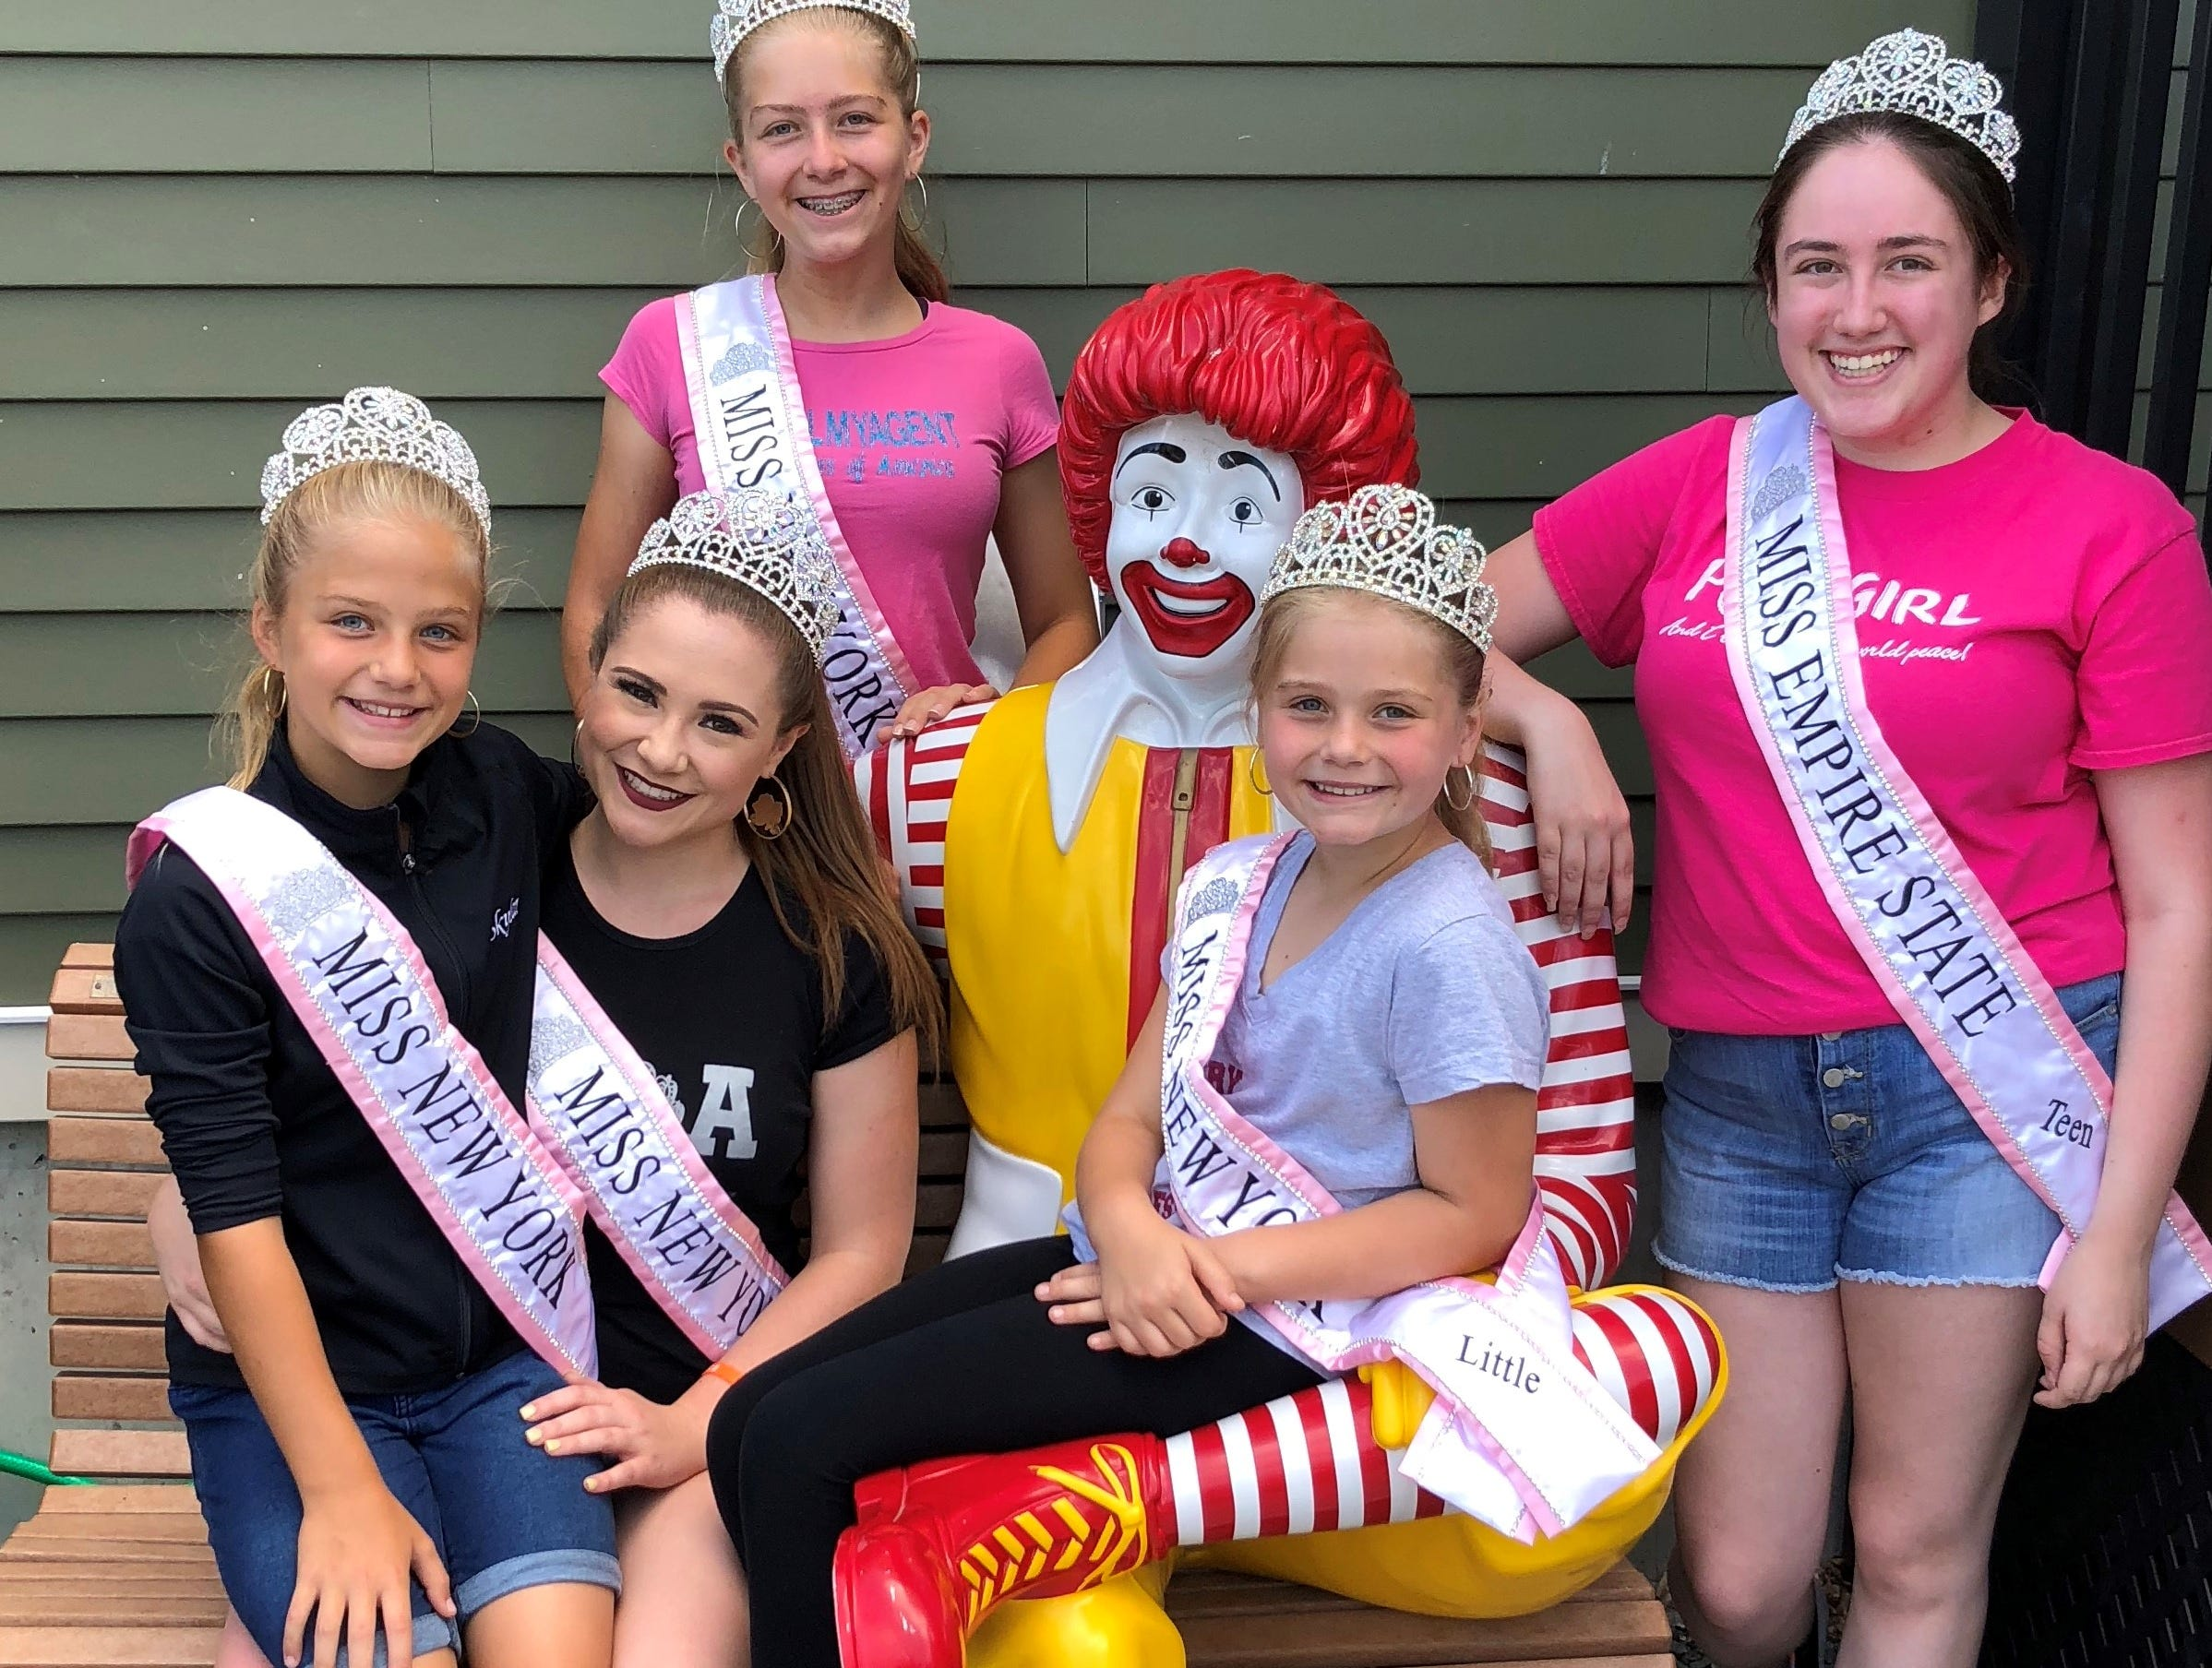 Before Brandy Engel was crowned Miss Princess of America, she was Miss New York, volunteering with Ronald McDonald house.